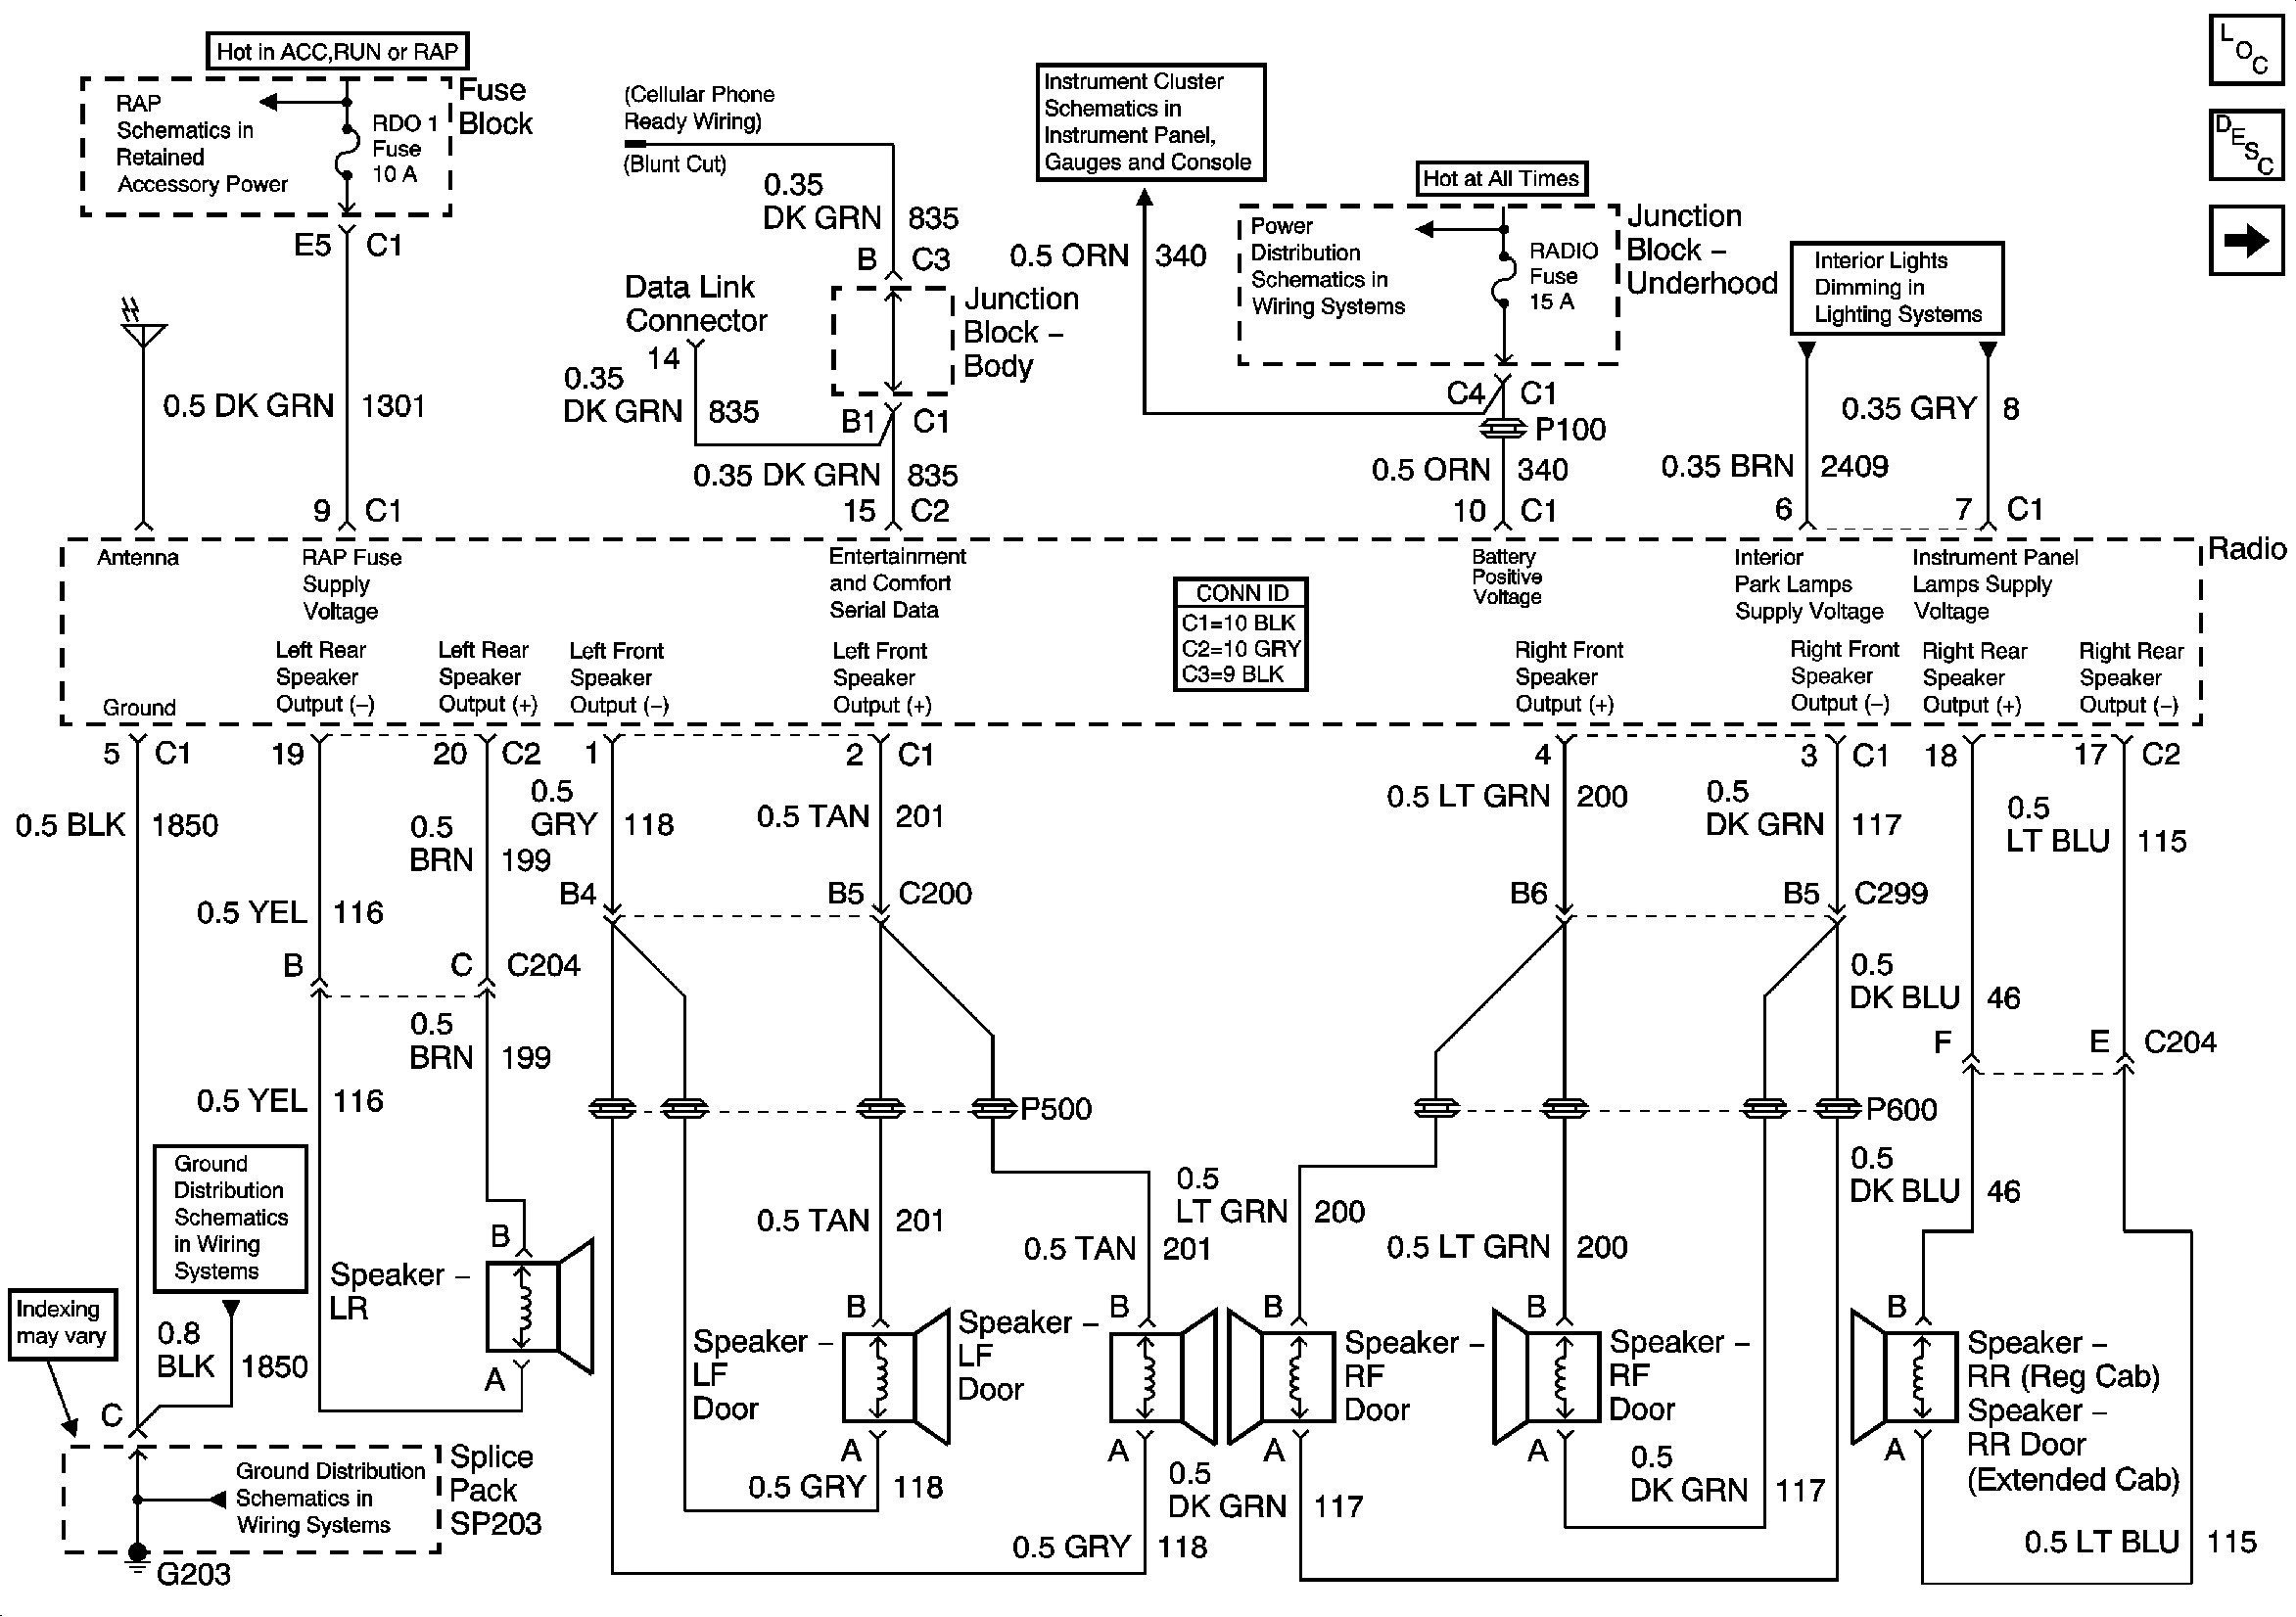 2000 Chevy Malibu Wiring Diagram 2006 Chevy Silverado Wiring Diagram Of 2000 Chevy Malibu Wiring Diagram 2008 Silverado 2500hd Wiring Diagram